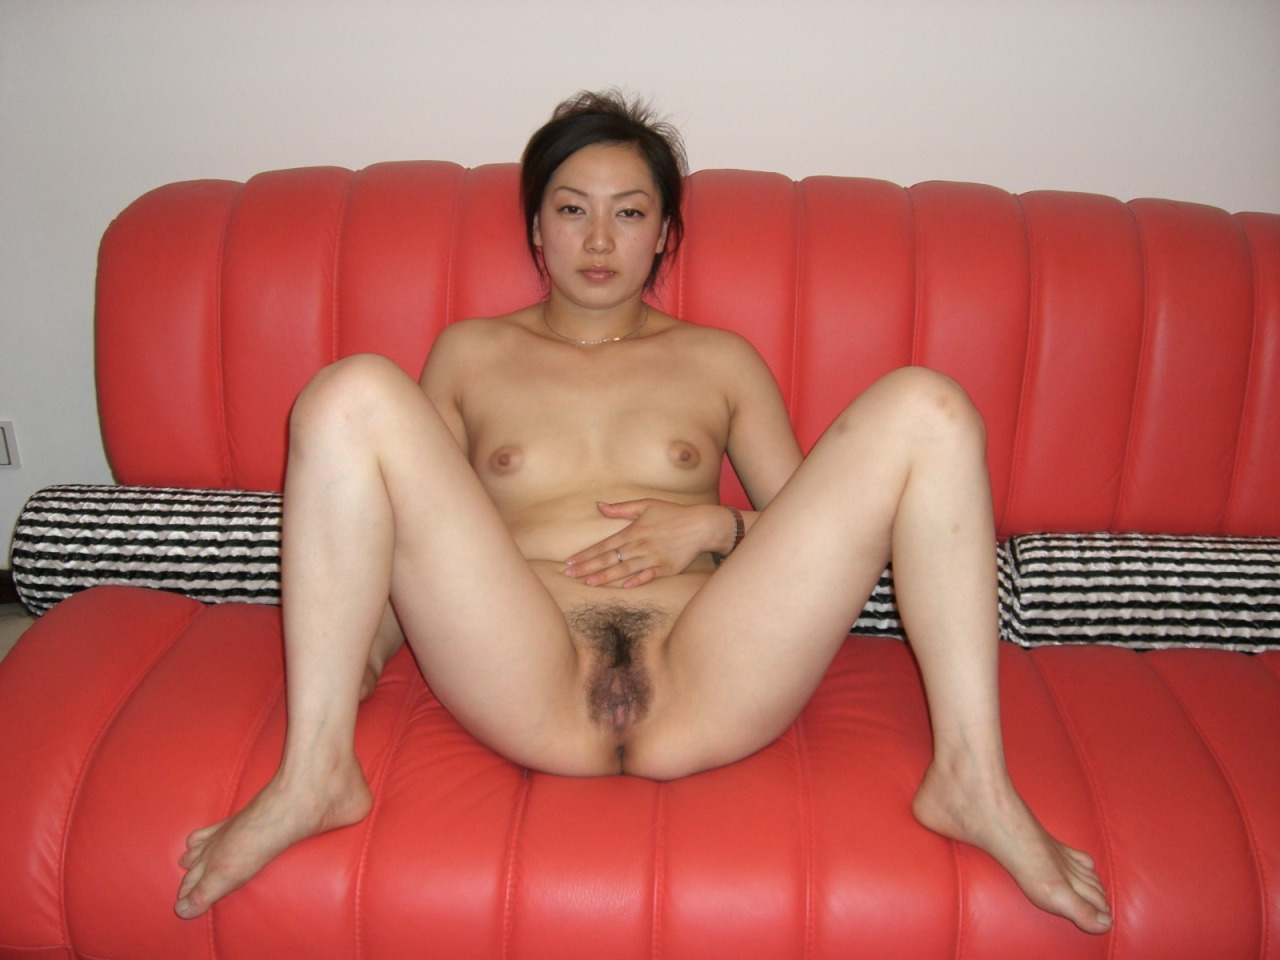 Chinese webcam japanese beauty shows off her spread pussy asian hot pepper